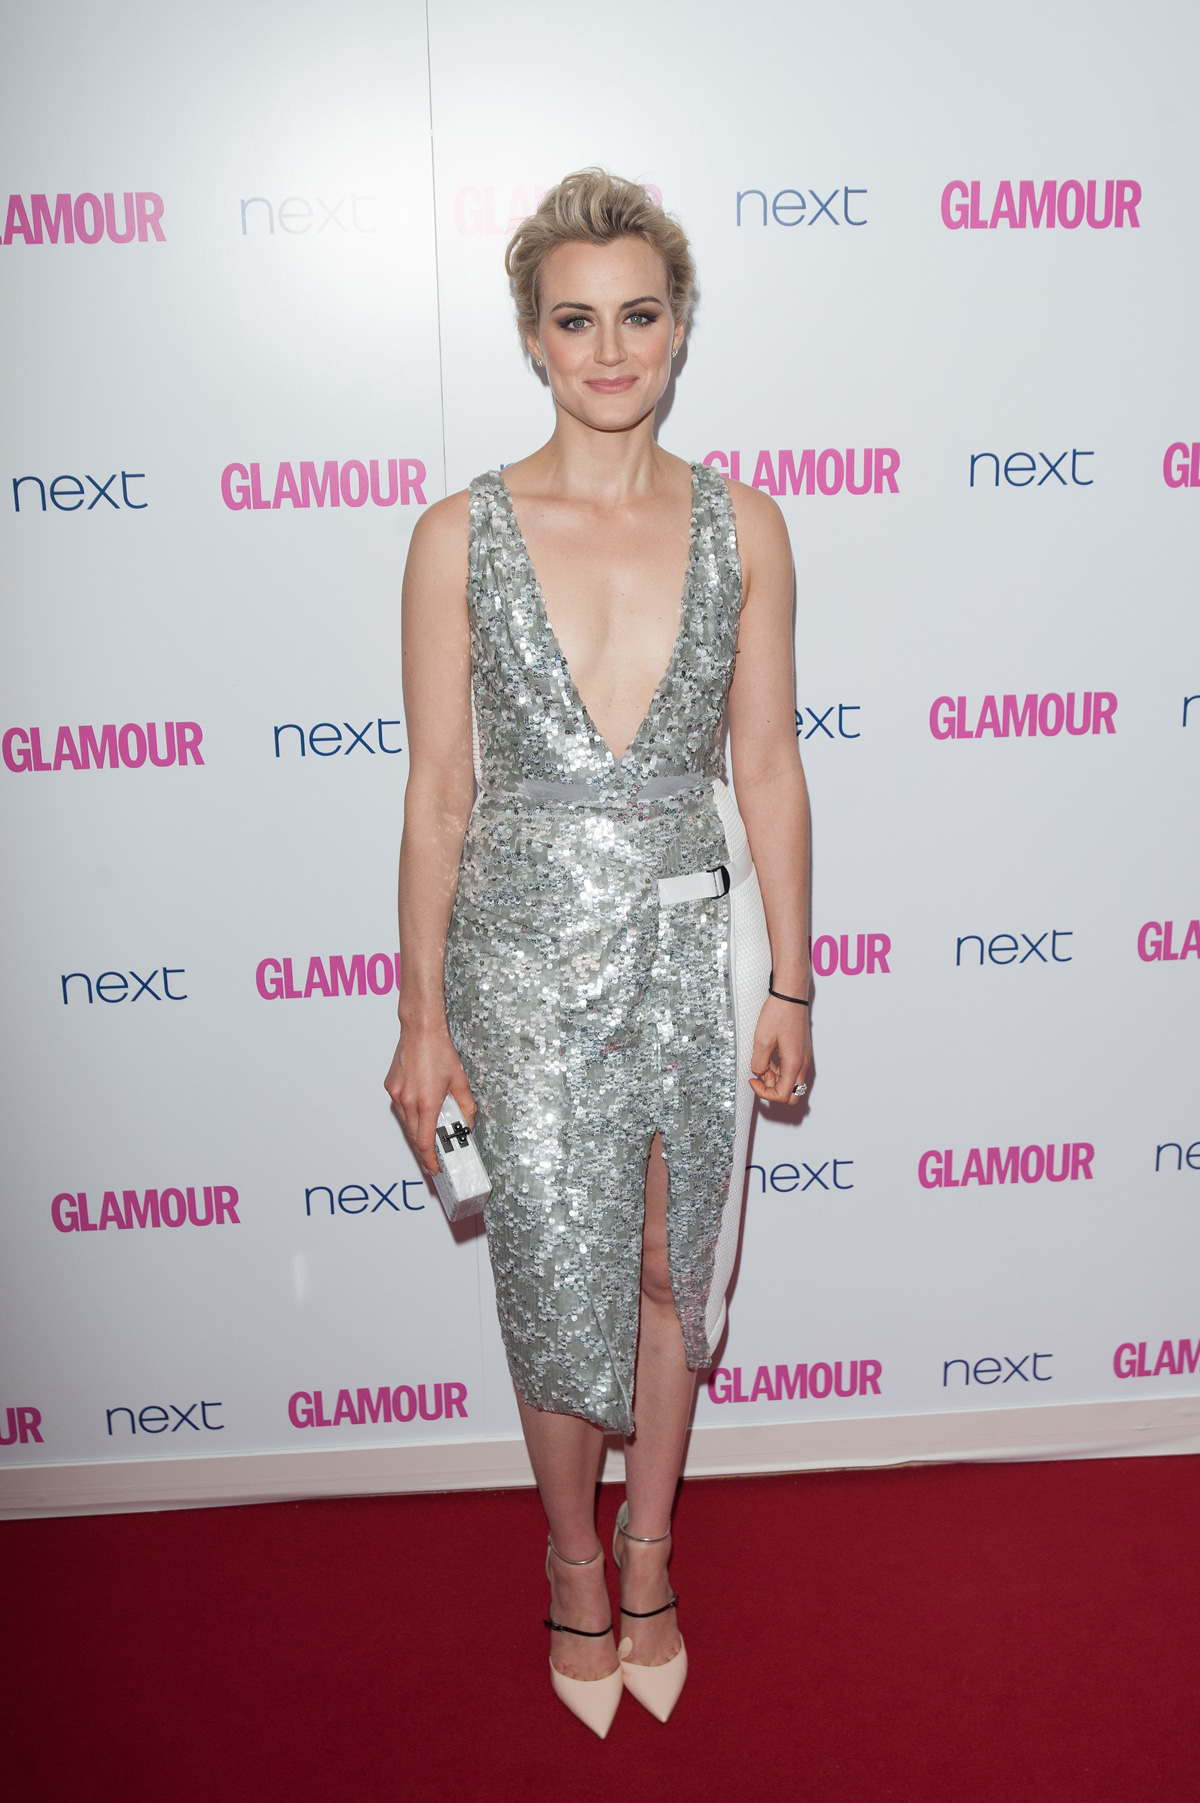 Taylor Schilling at the Glamour Women of the Year Awards